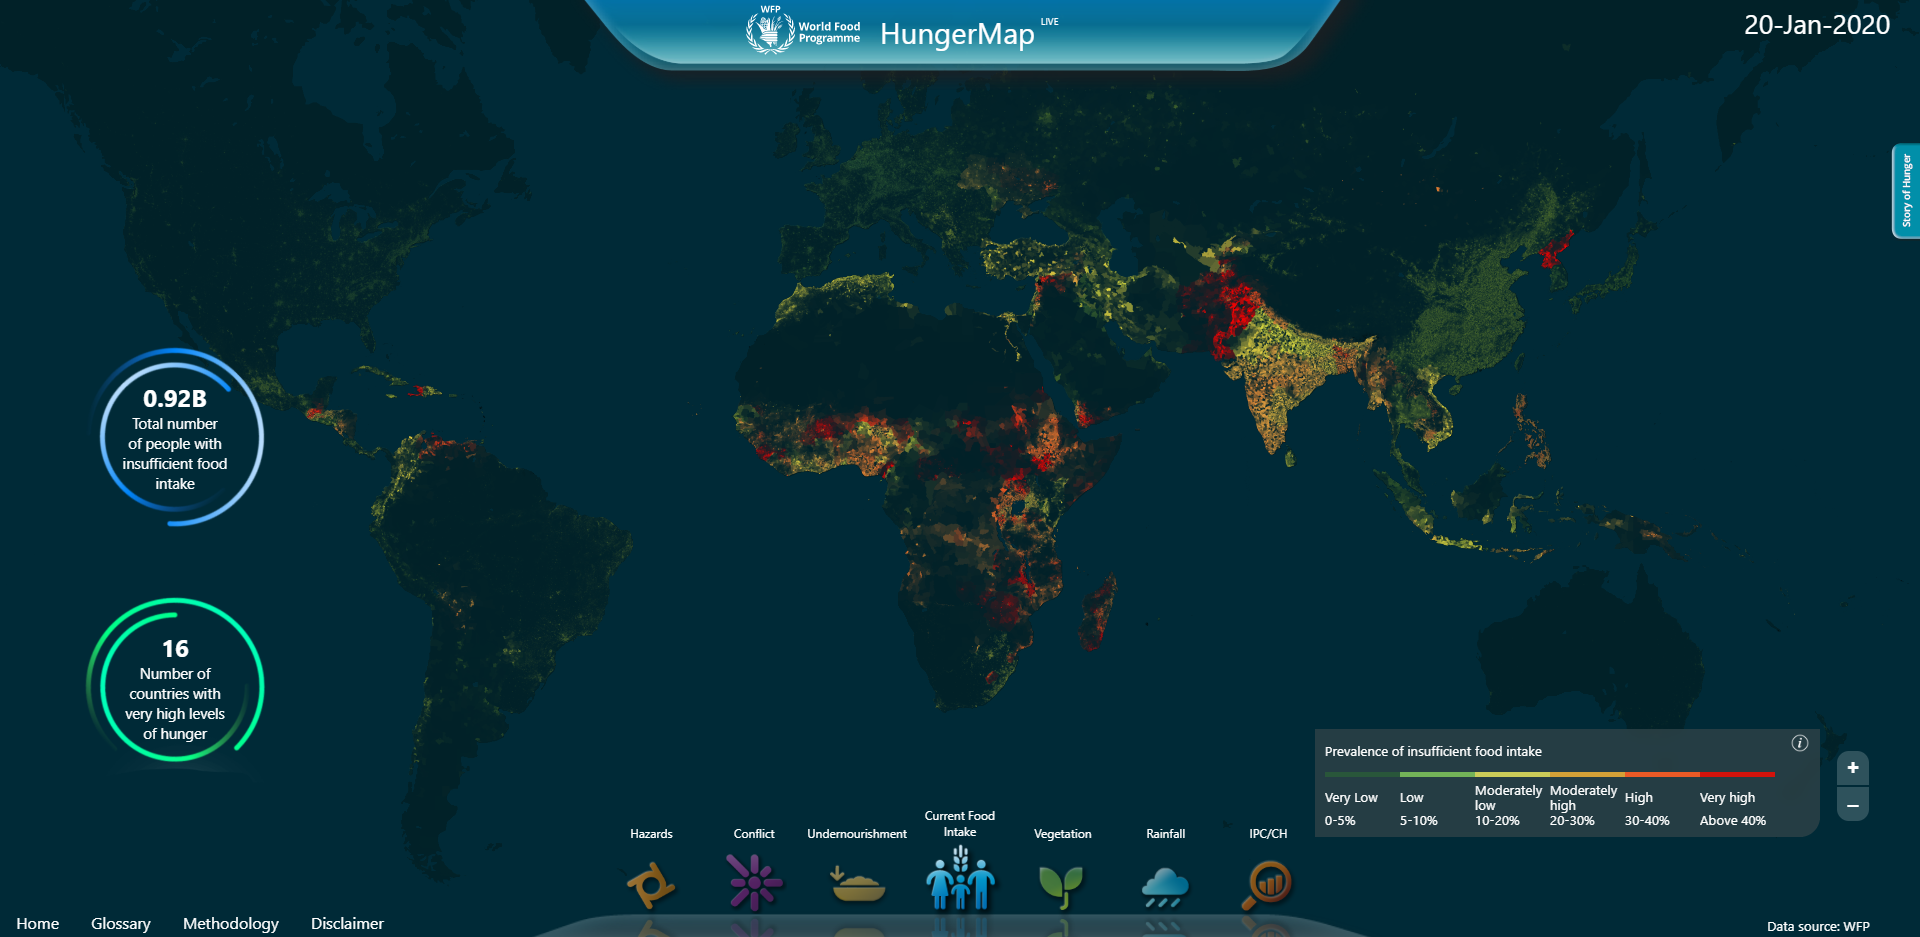 Wfp Launches Hungermap Live Real Time Monitoring Of Food Security By Anna Gustilo Ong World Food Programme Insight